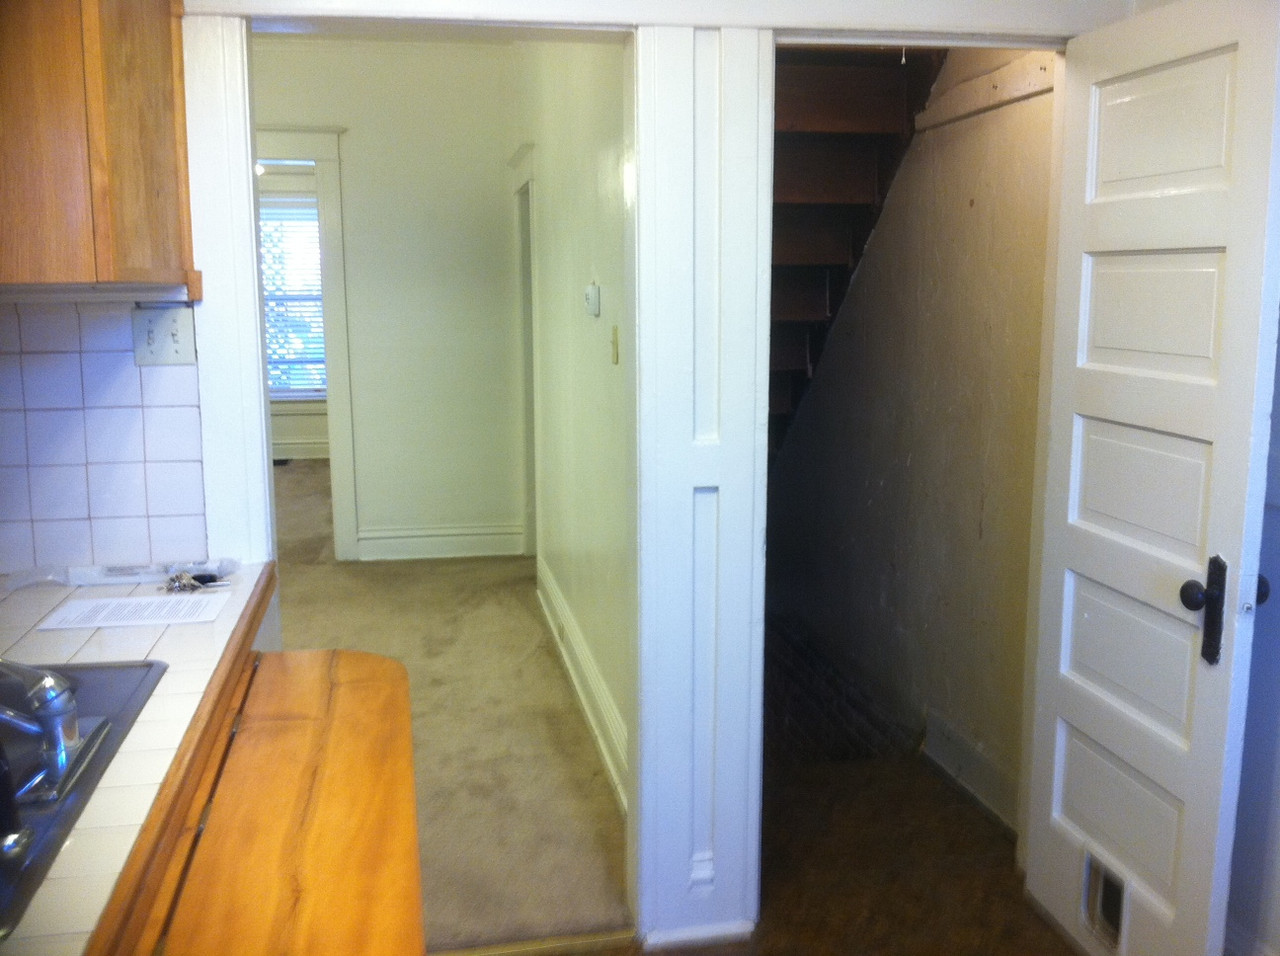 view from the kitchen toward the main body and door to basement